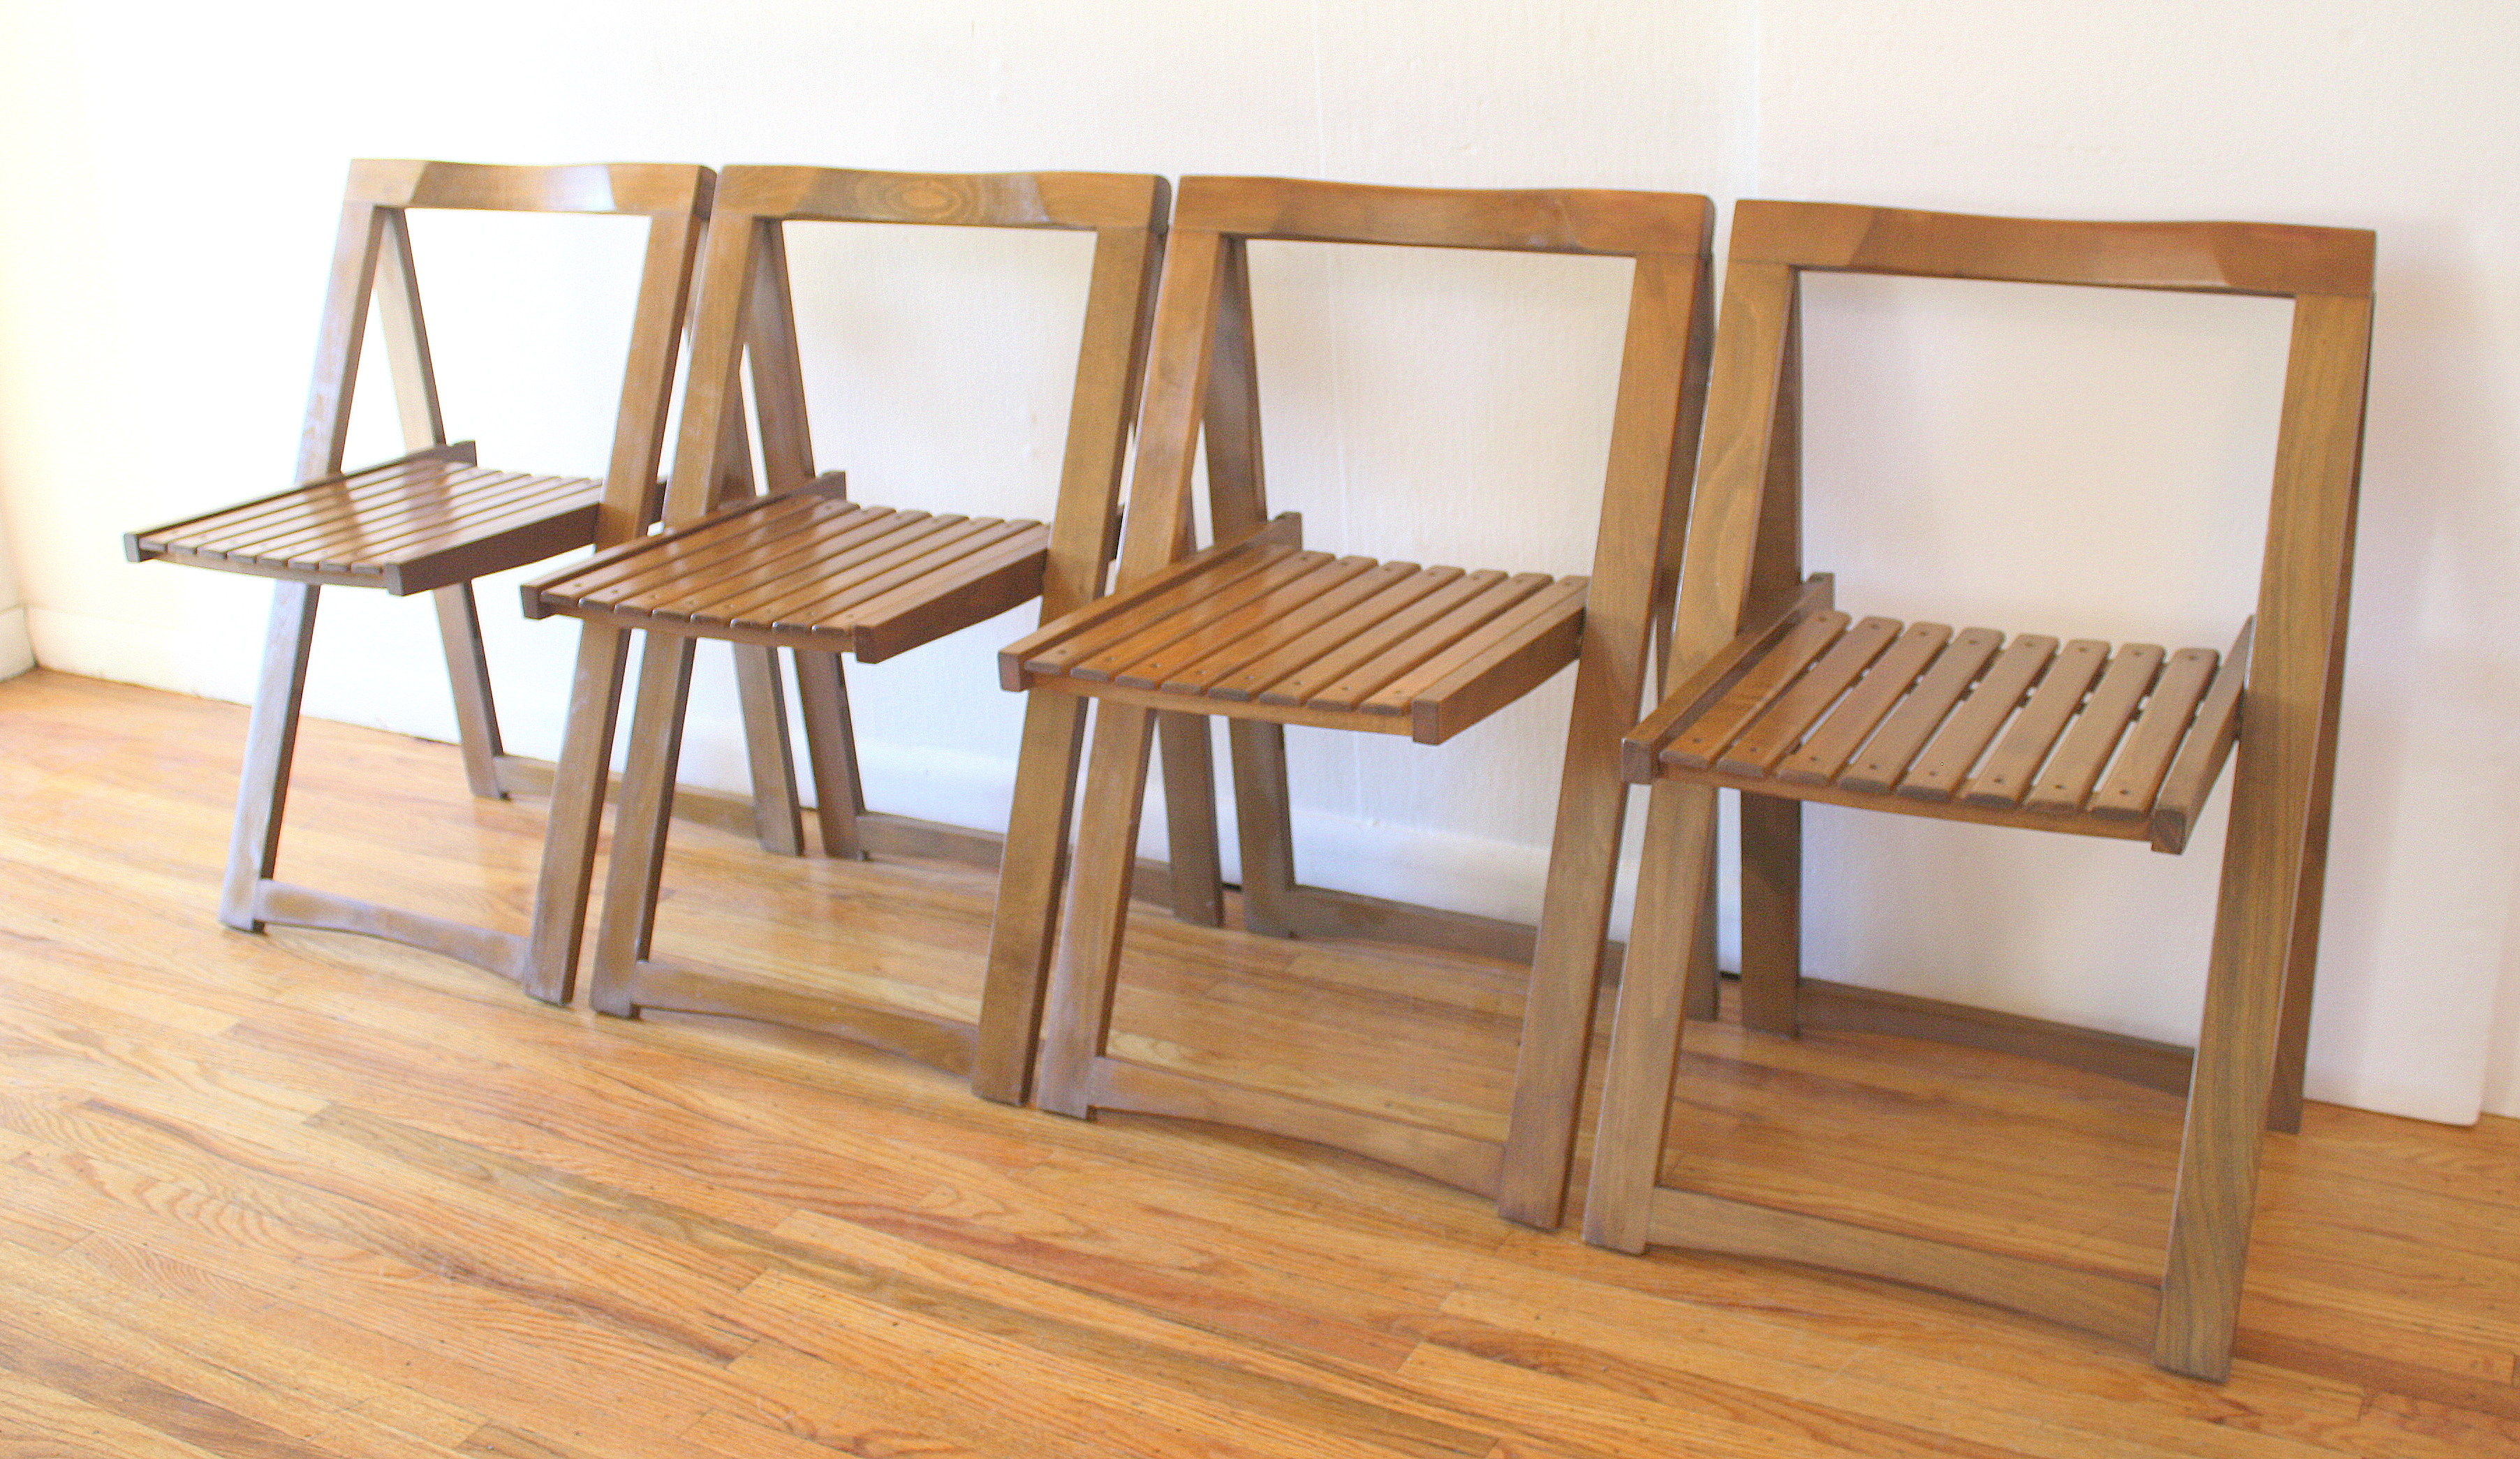 Mid century modern gateleg dining table chairs picked vintage - Gateleg table and chairs ...